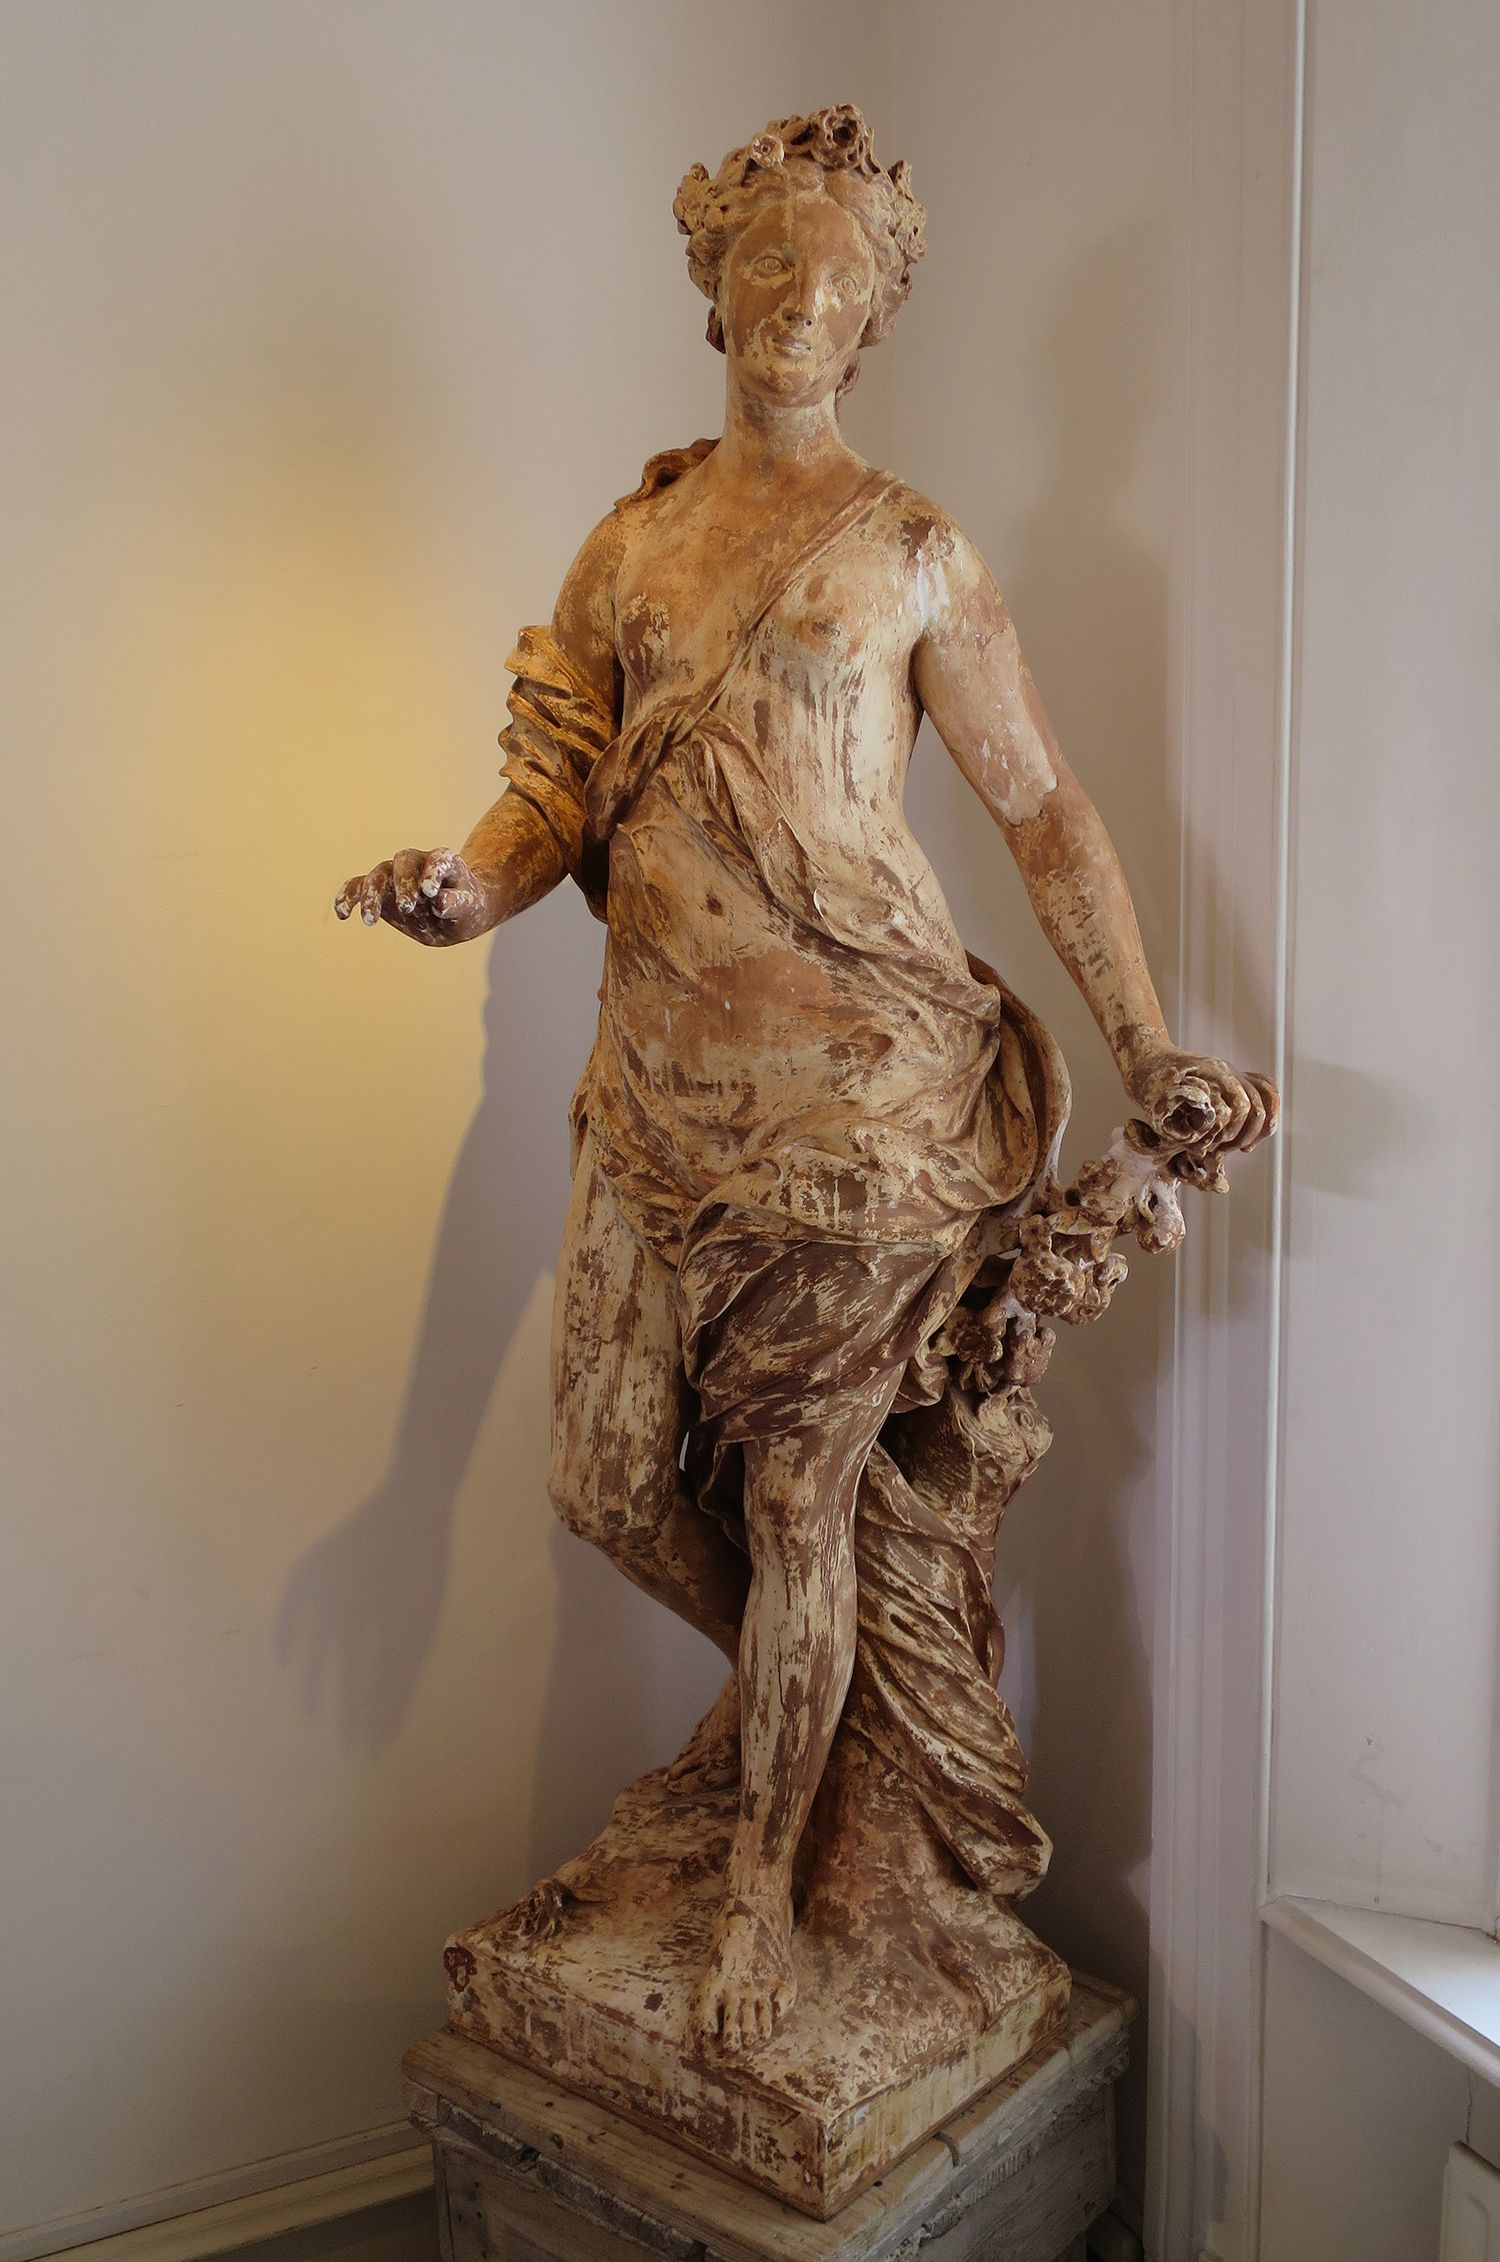 19th c French Plaster Statue of Primavera by Charles Fremont www.appleyhoare.com